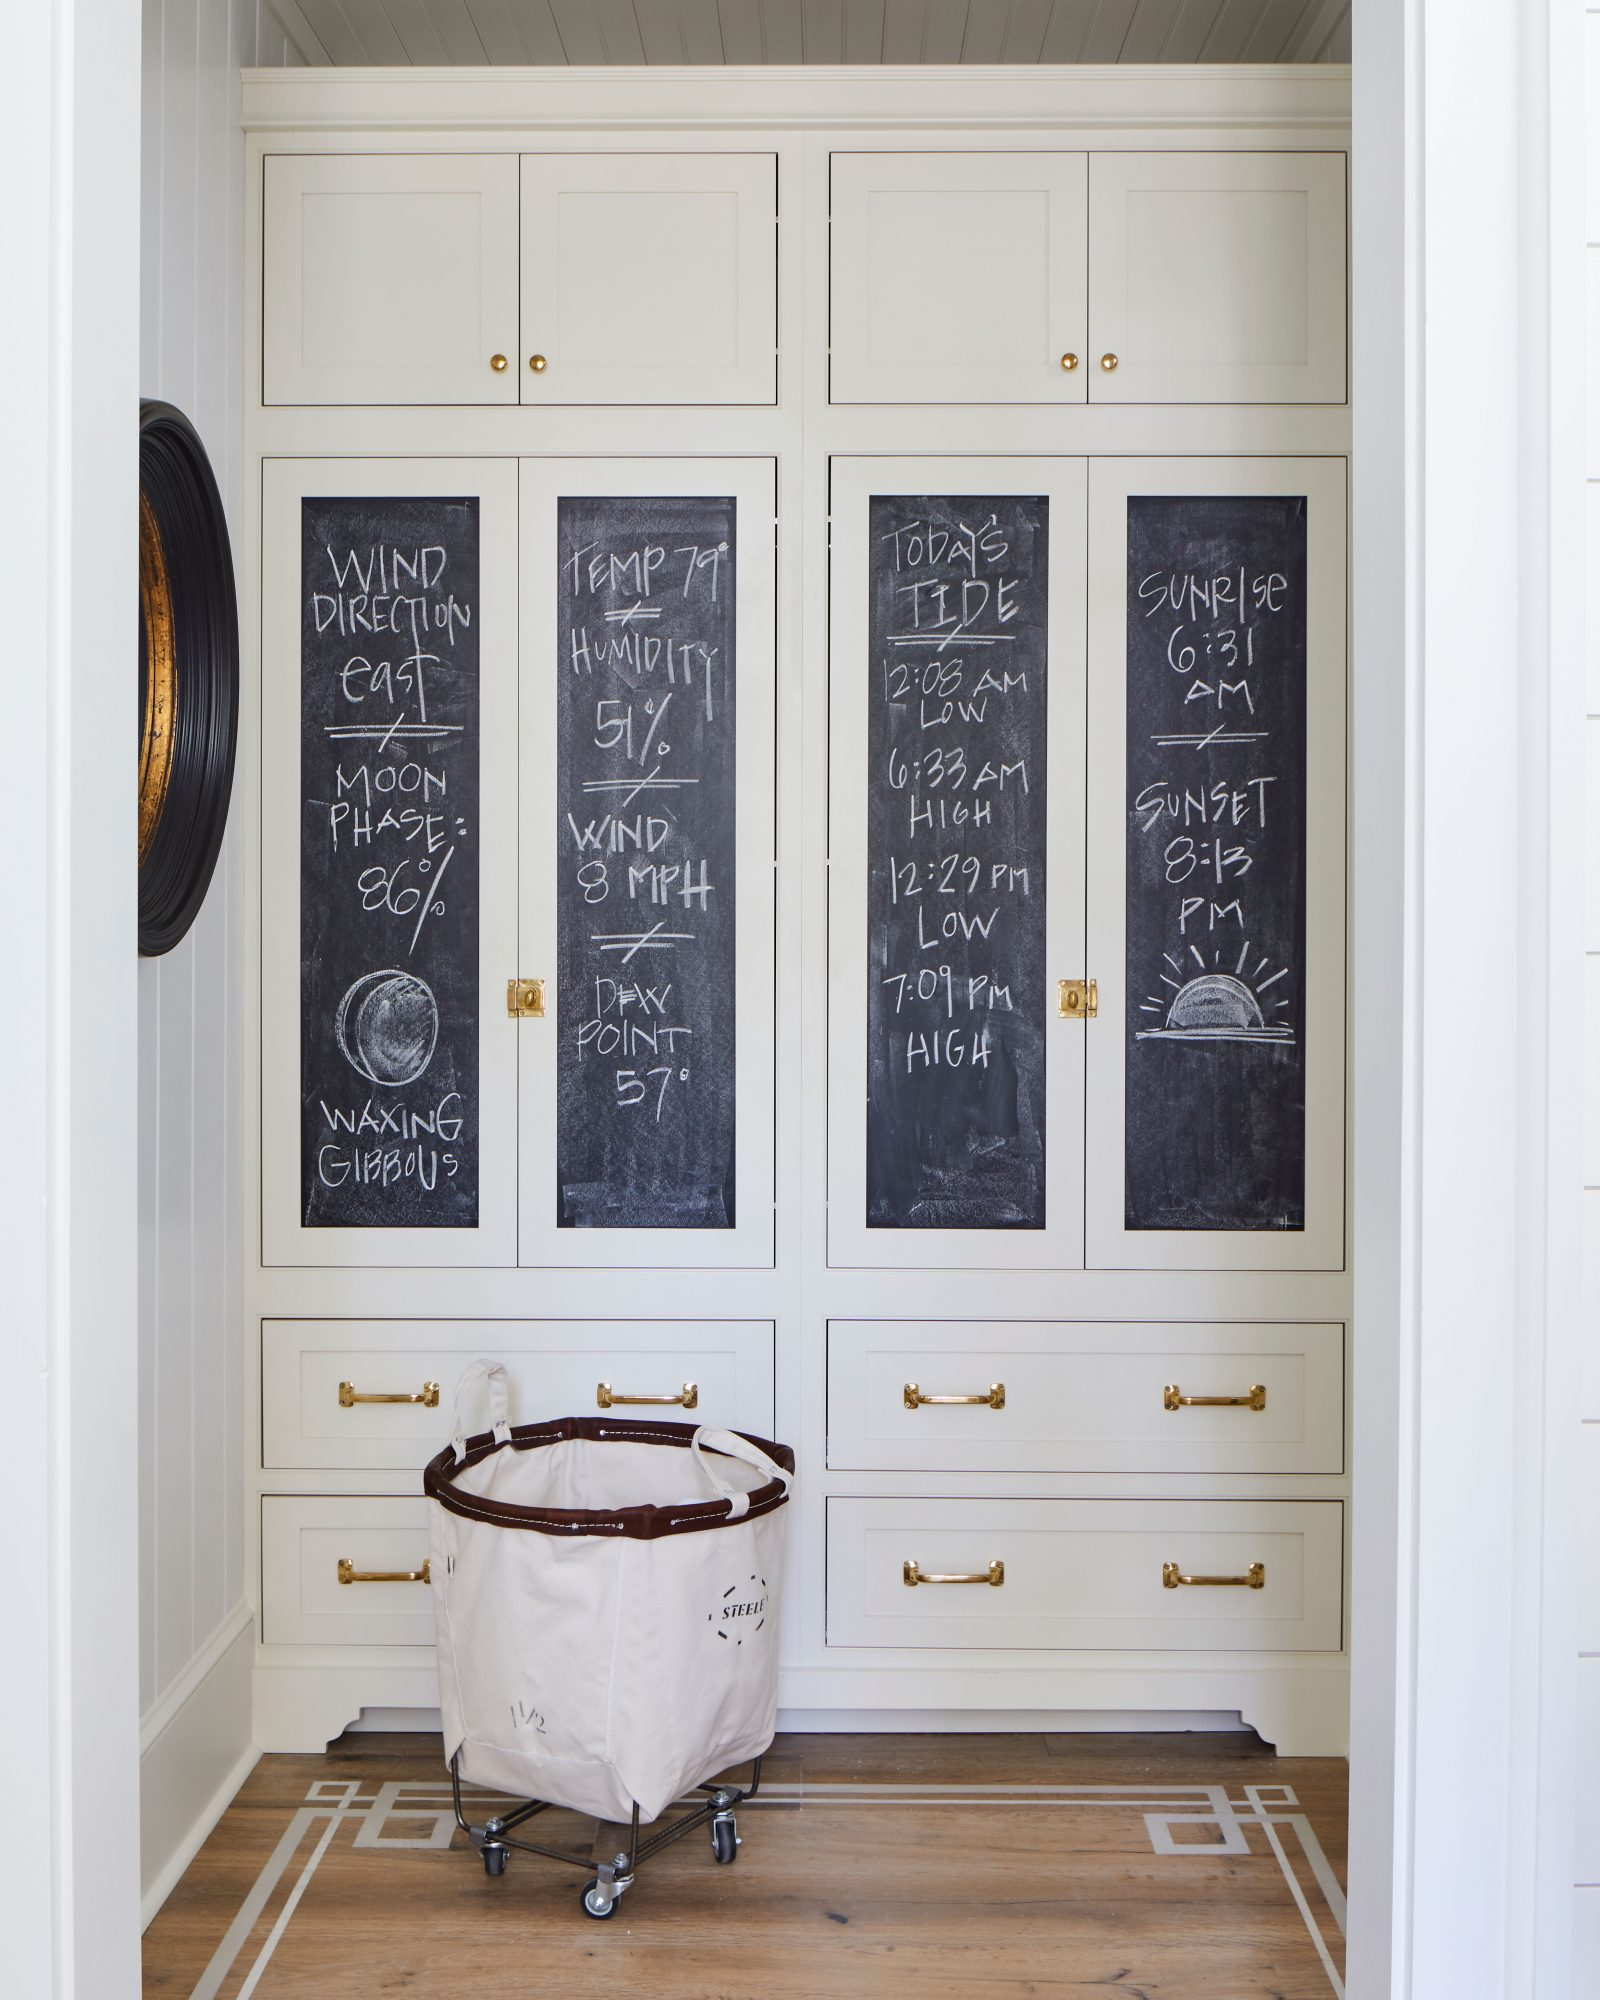 2019 Idea House Laundry Room Vestibule and Mudroom